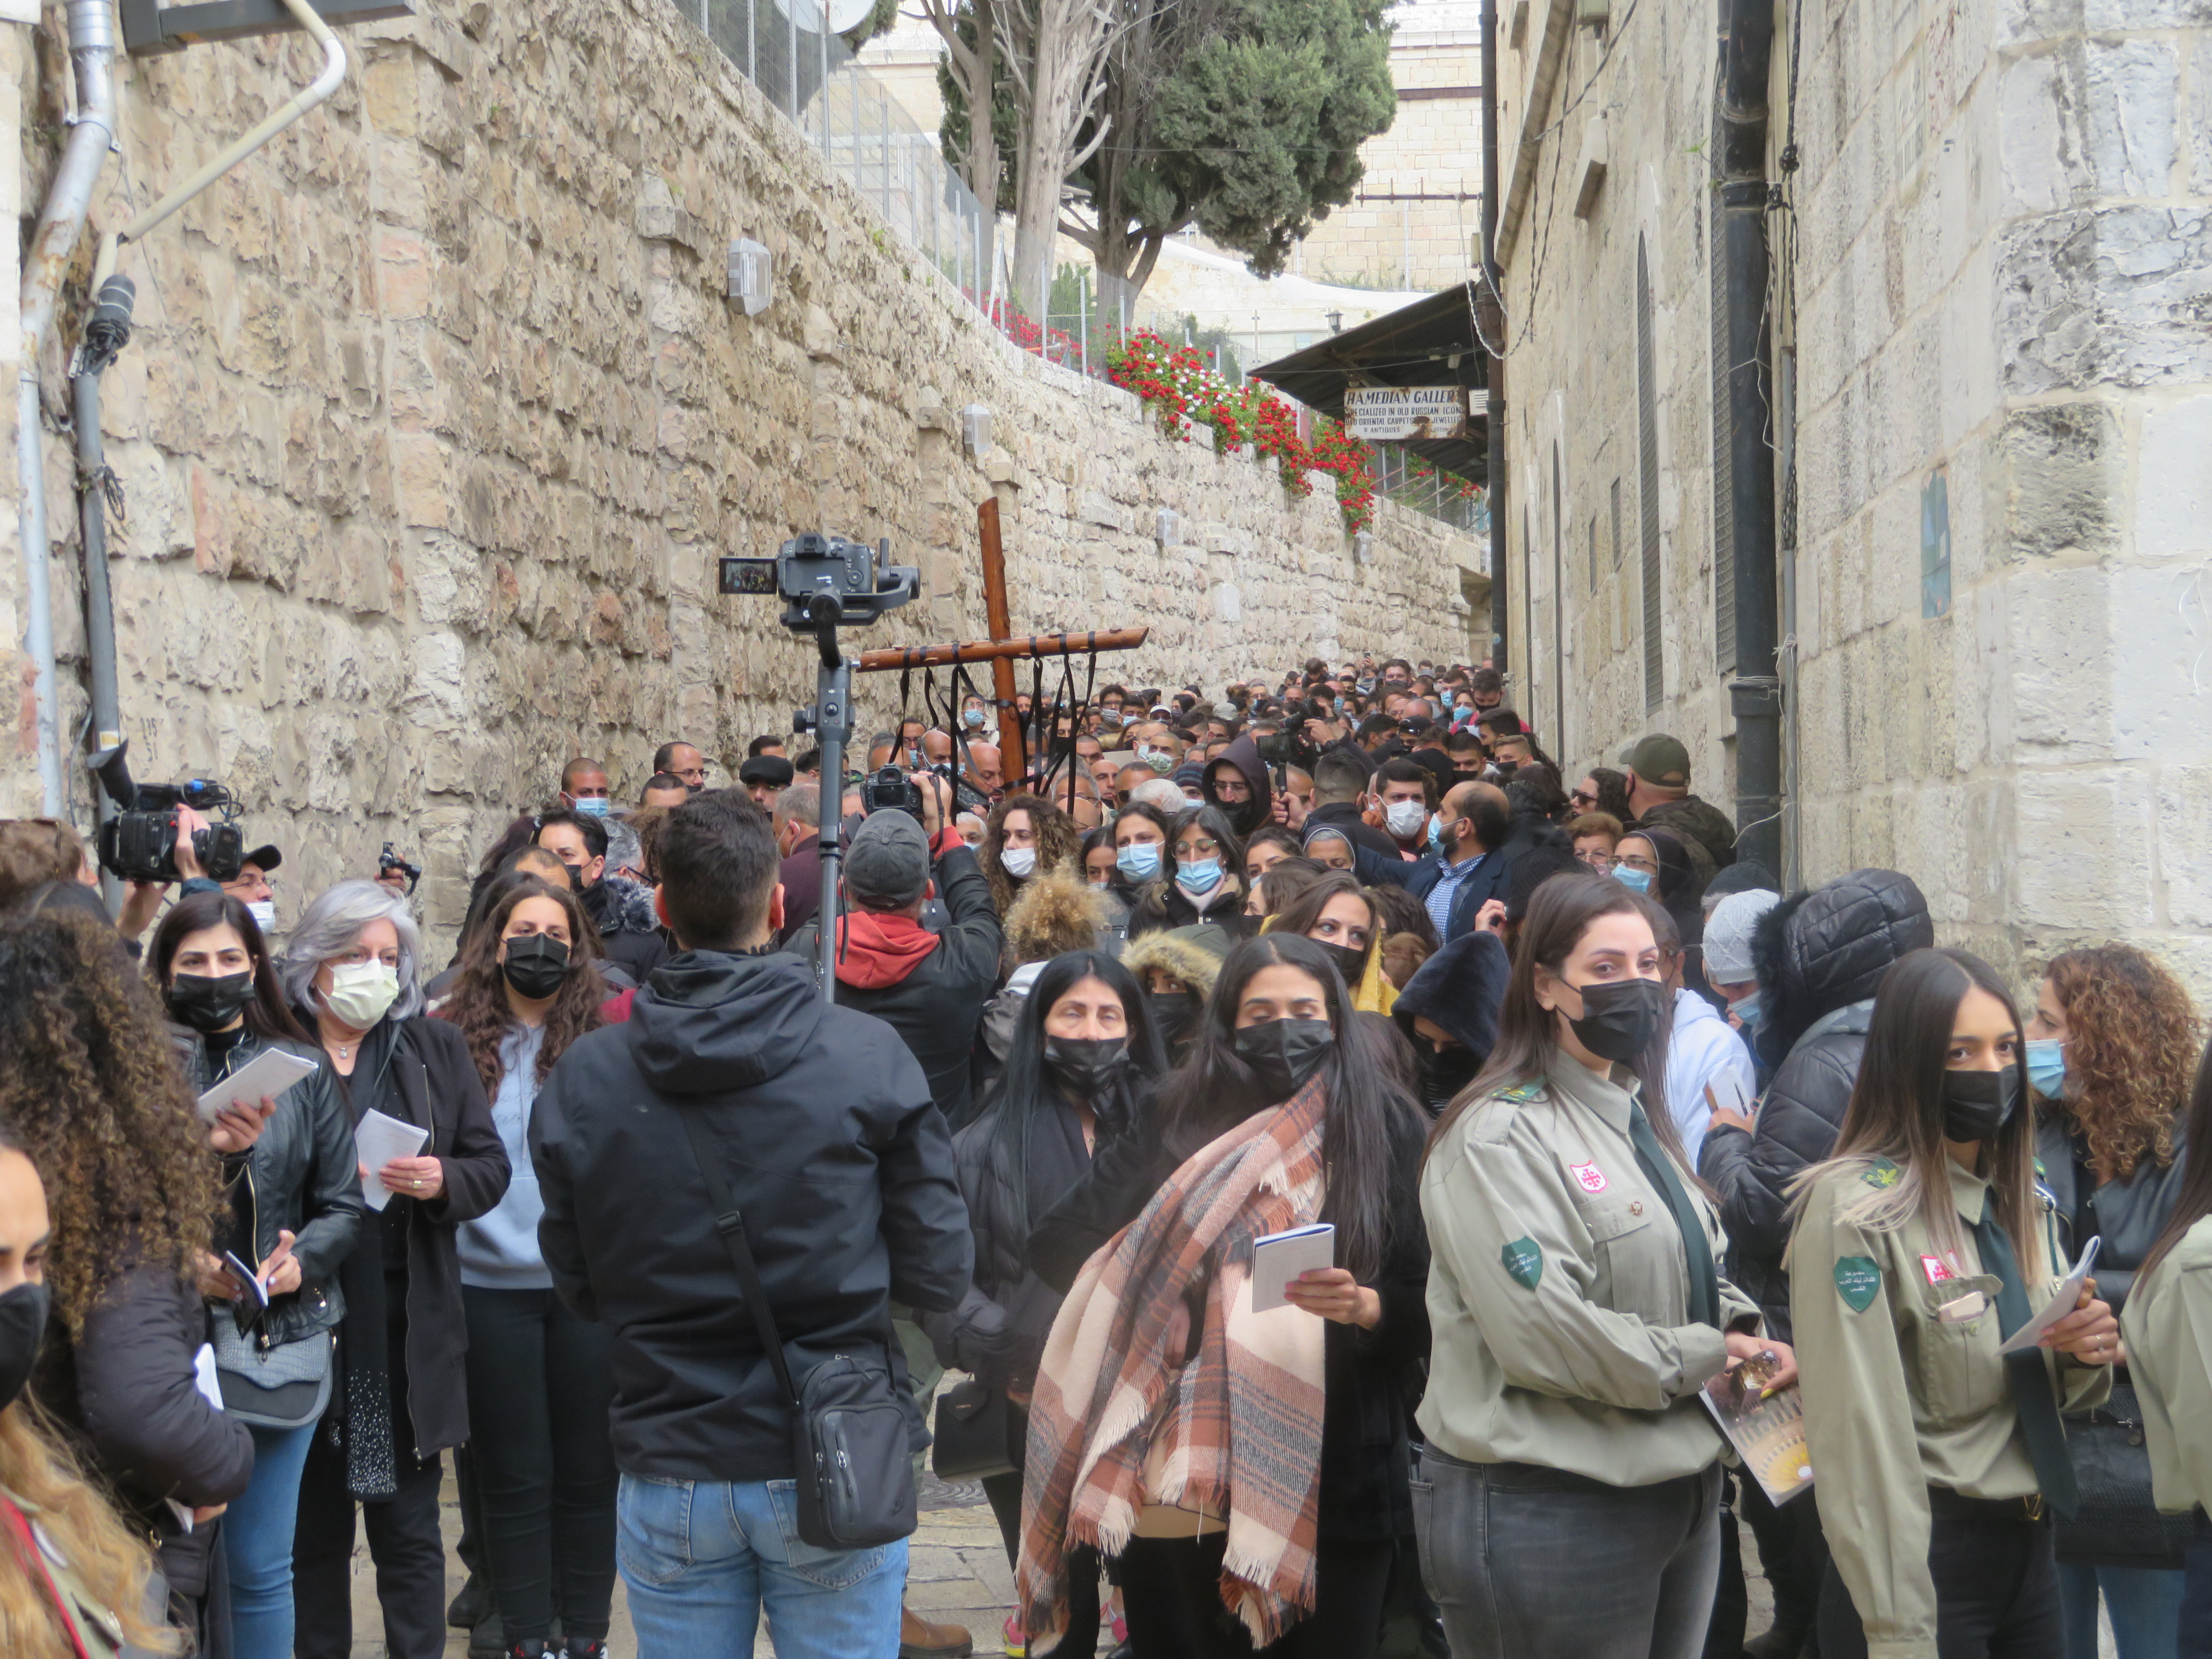 Palestinian Arab Christians re-trace Christ's journey to His crucifixion on Good Friday in Jerusalem.